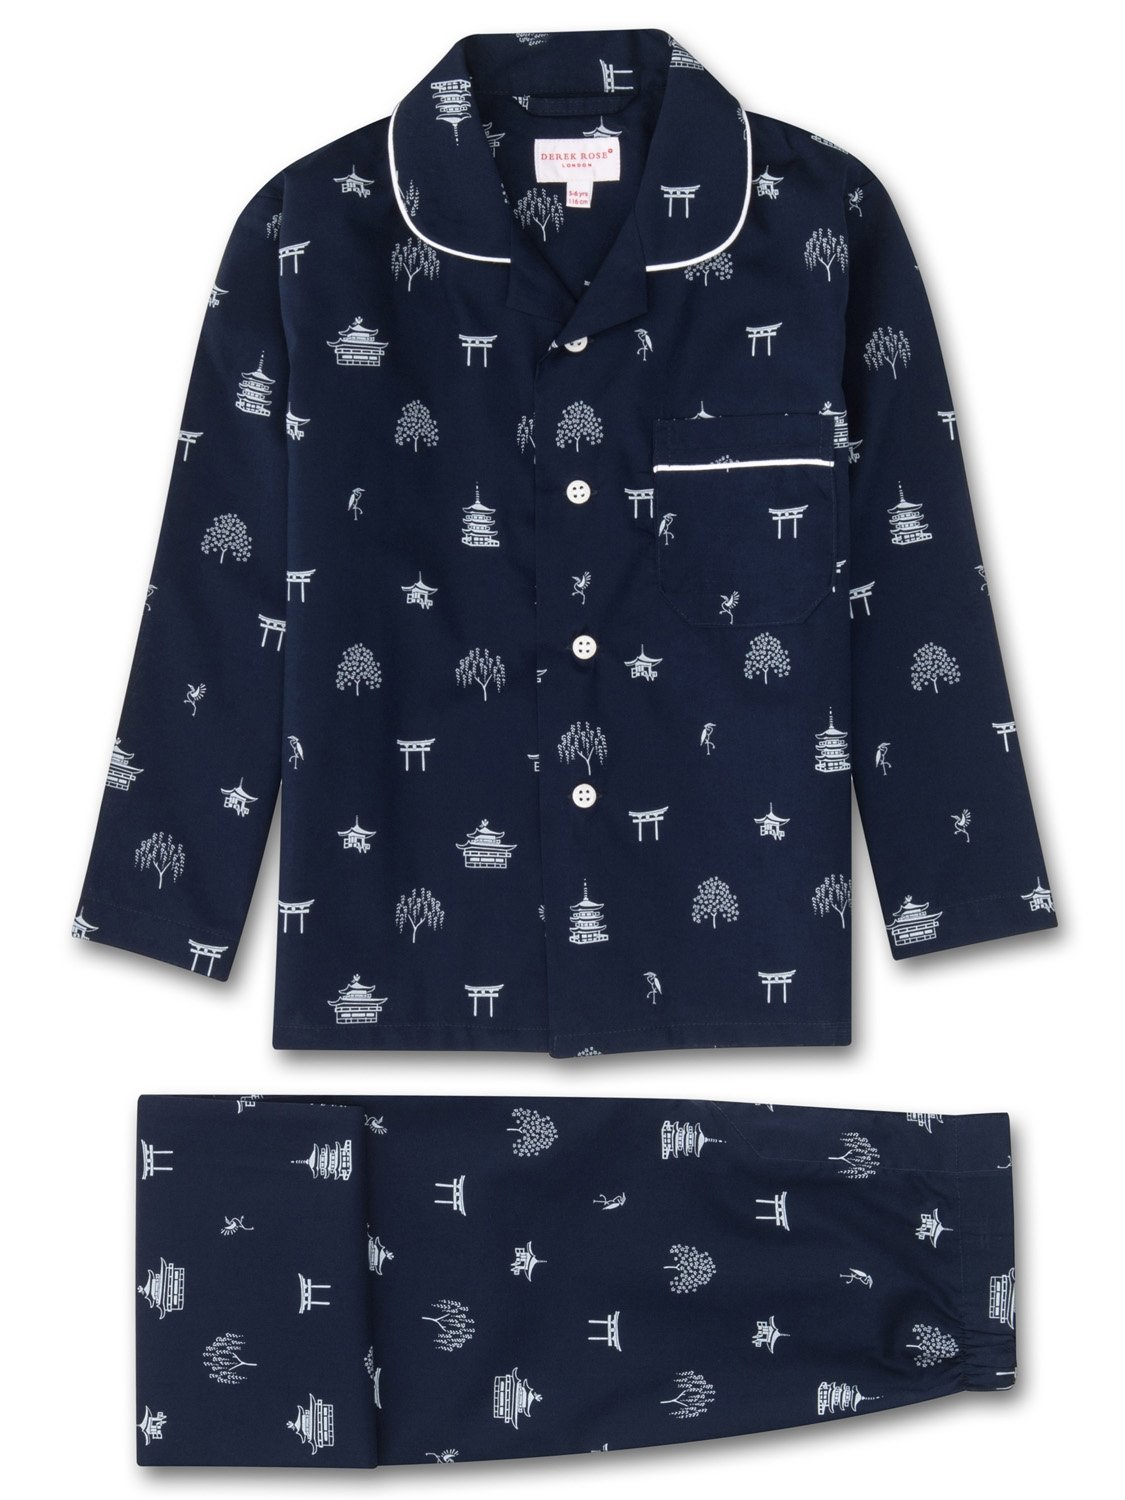 Kids' Pyjamas Nelson 65 Cotton Batiste Navy